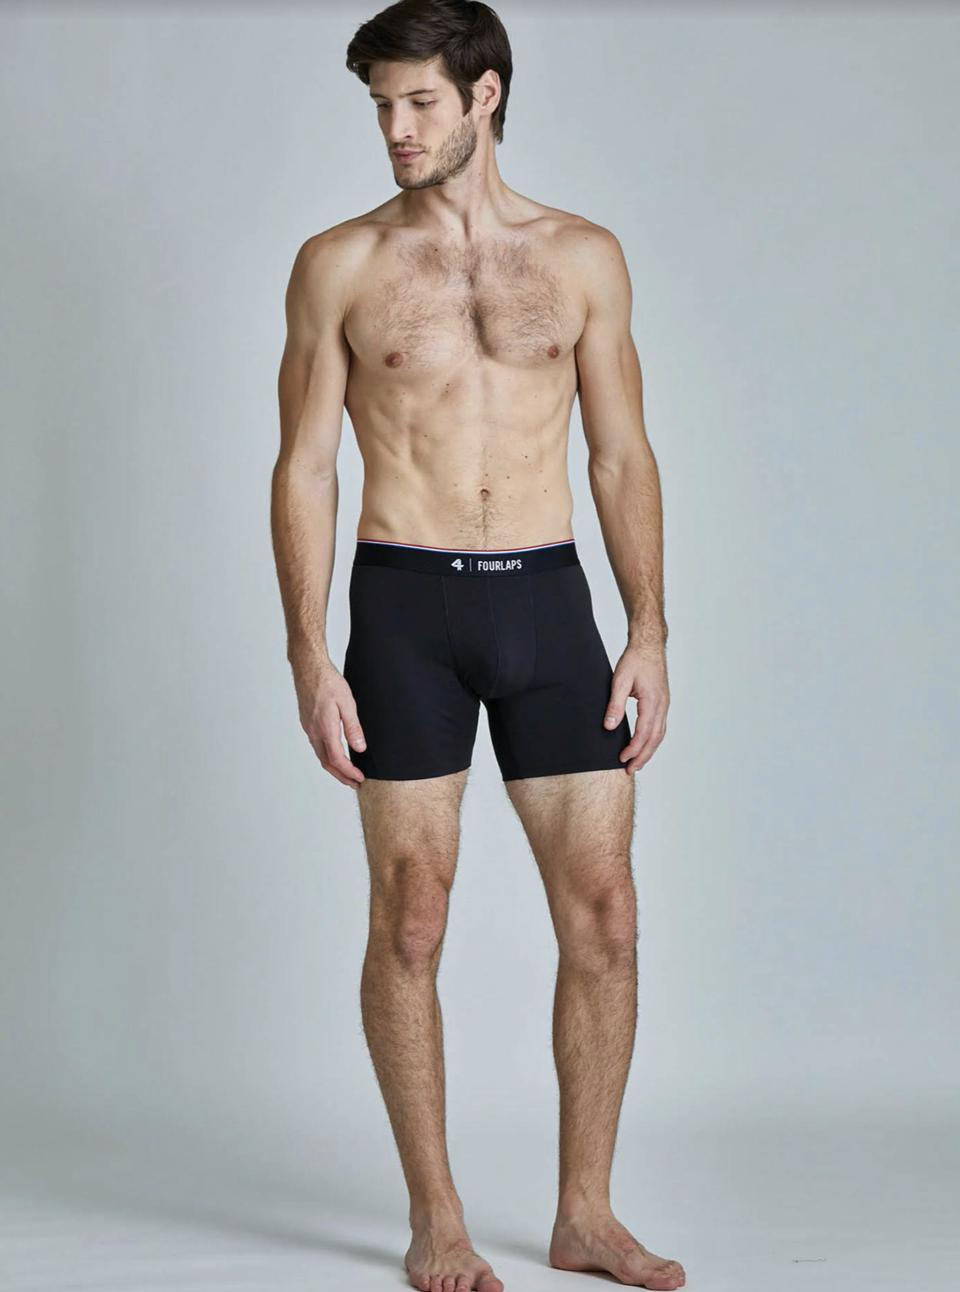 The all-new Boxer Briefs from Fourlaps